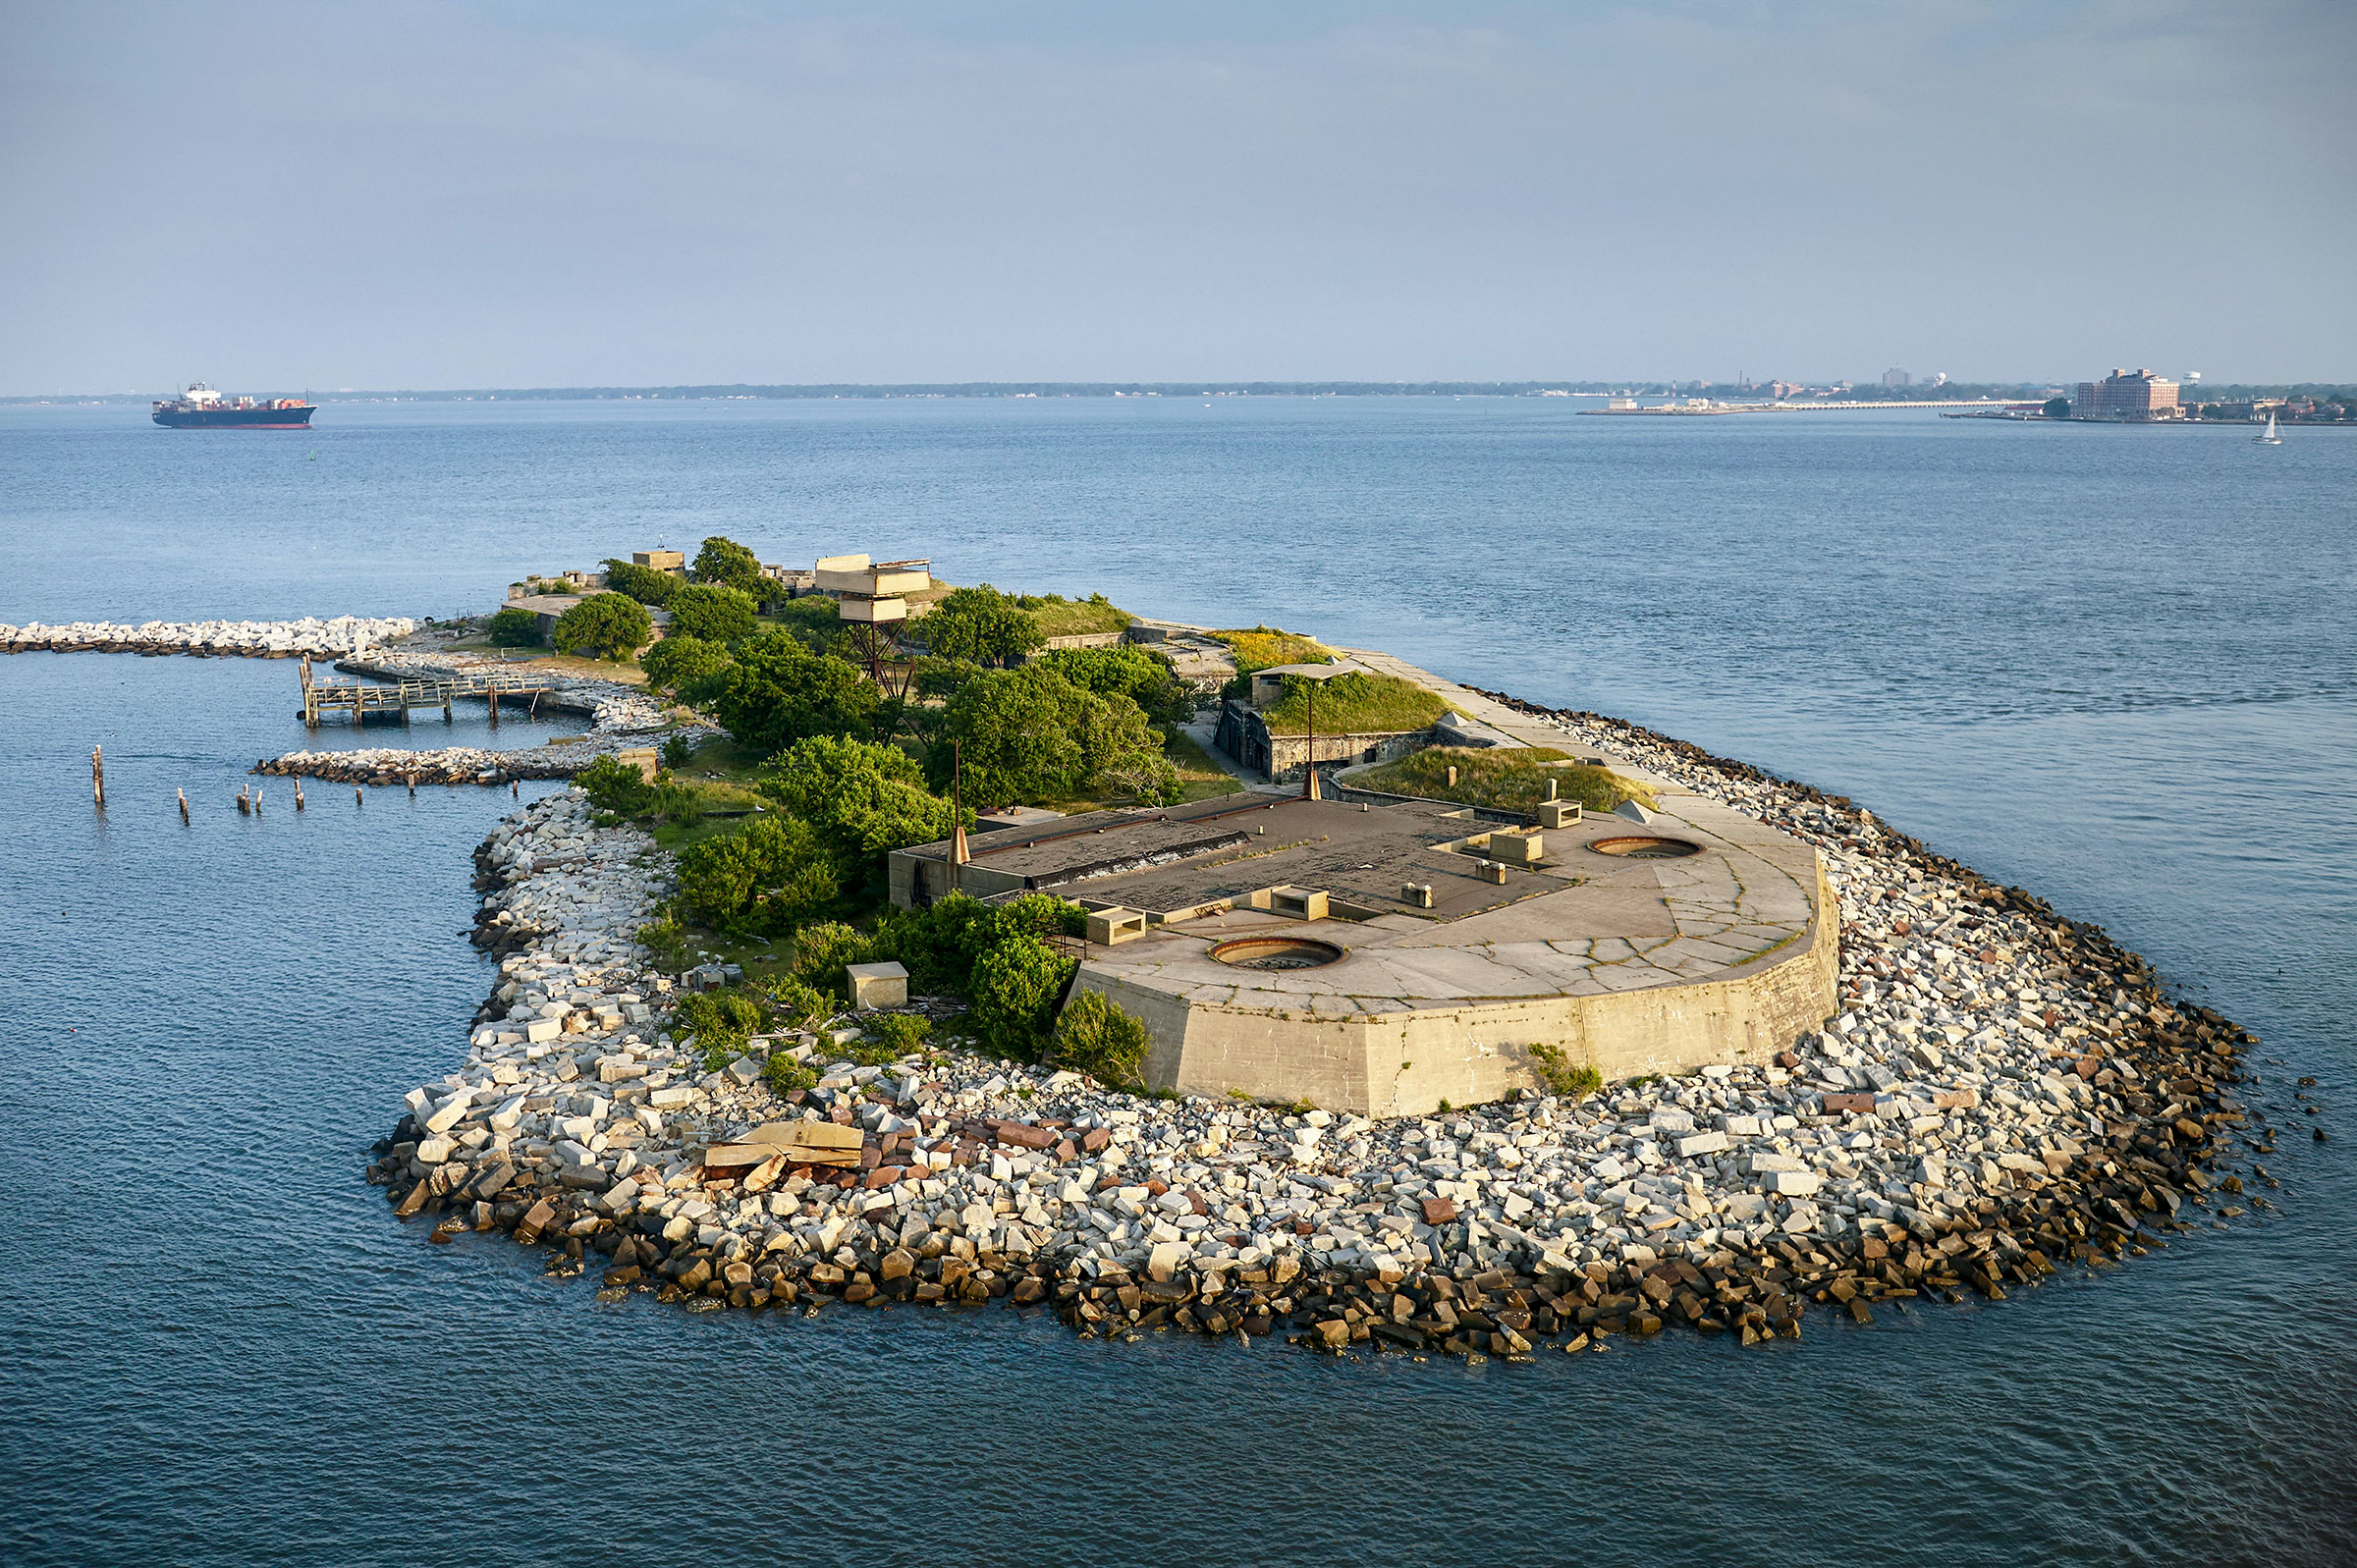 Rip Raps Island, also known as Fort Wool, will serve as a temporary nesting site for the displaced birds. Photo: Cameron Davidson/Alamy